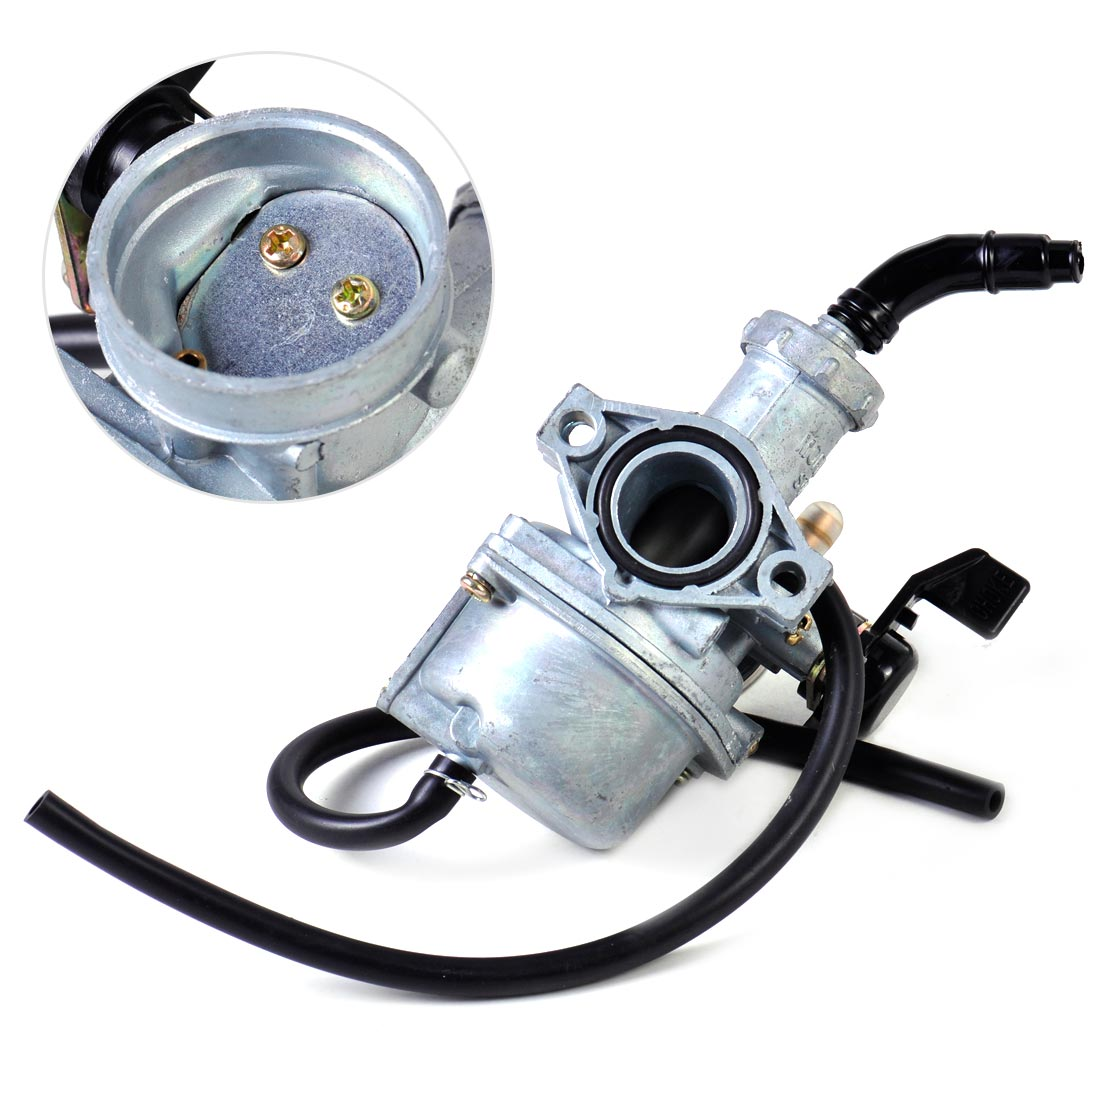 beler 22mm Carburetor PZ22 for 4-stroke ATV Tao Tao Roketa SunL Go-Karts Pit Dirt Bike Go-Karts 110cc 125cc 140cc 150cc engines